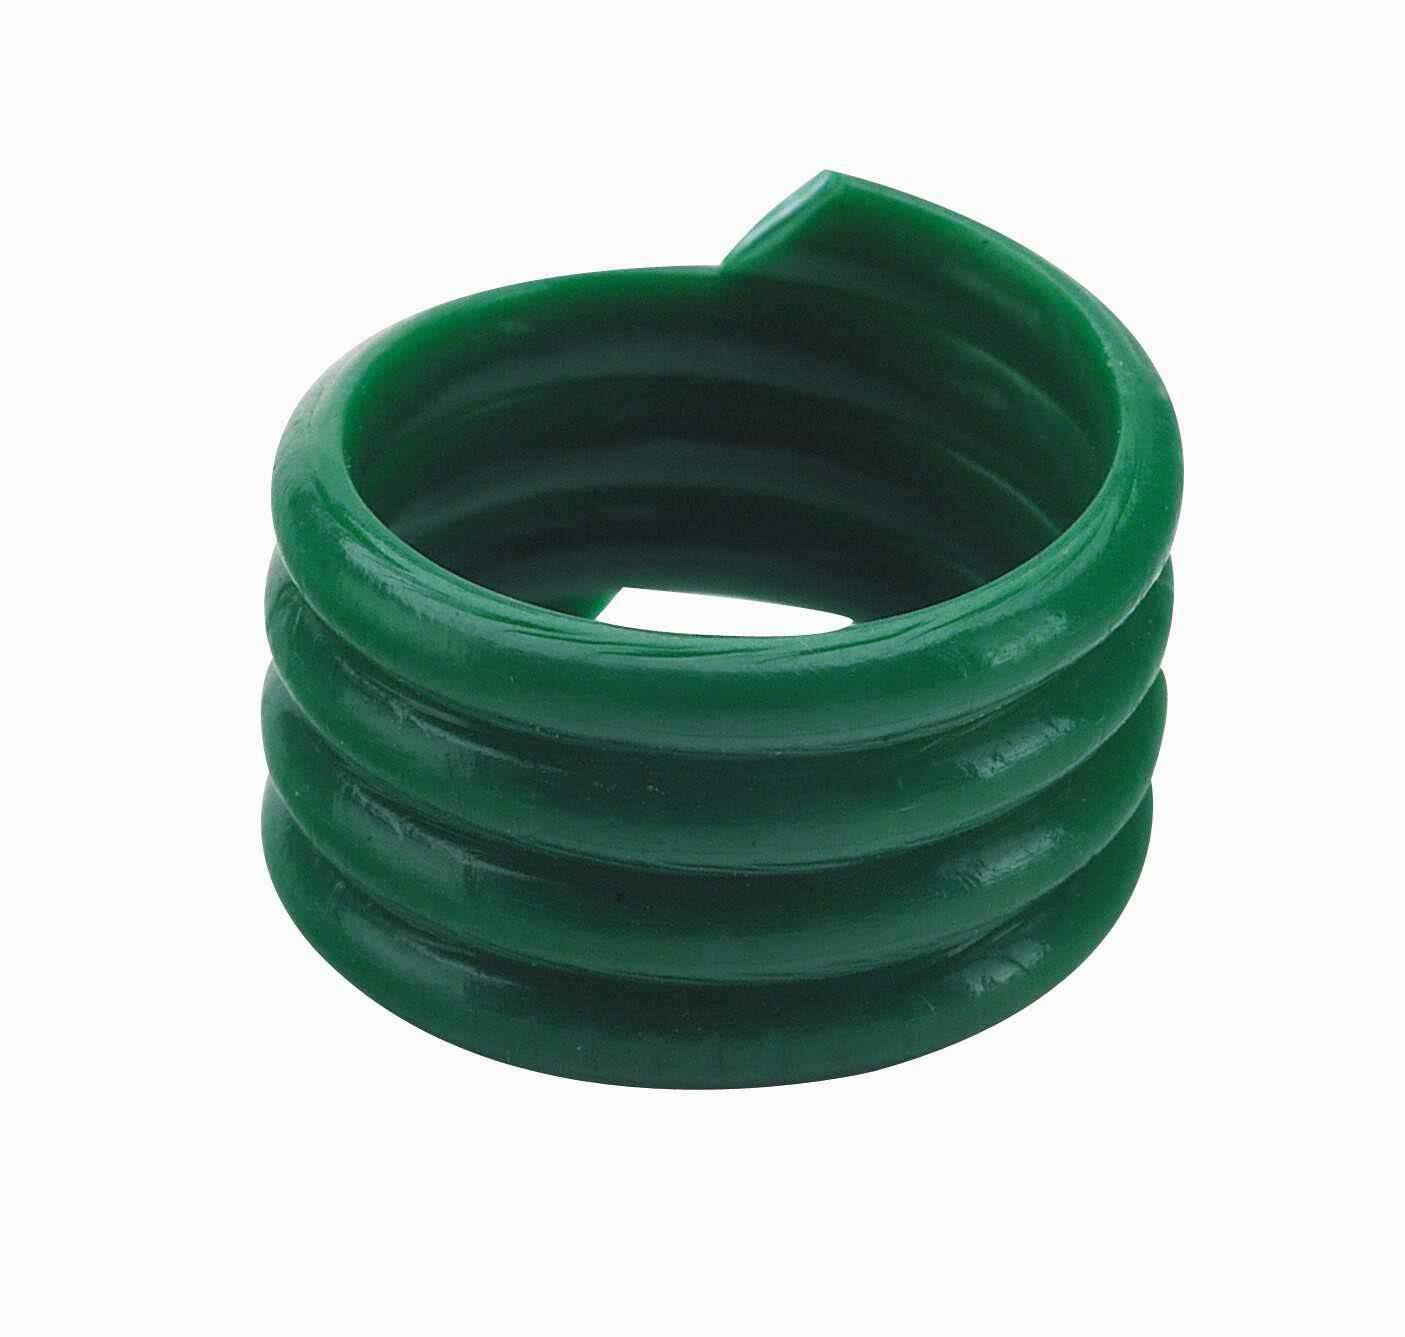 Poultry Leg Rings Green (20)